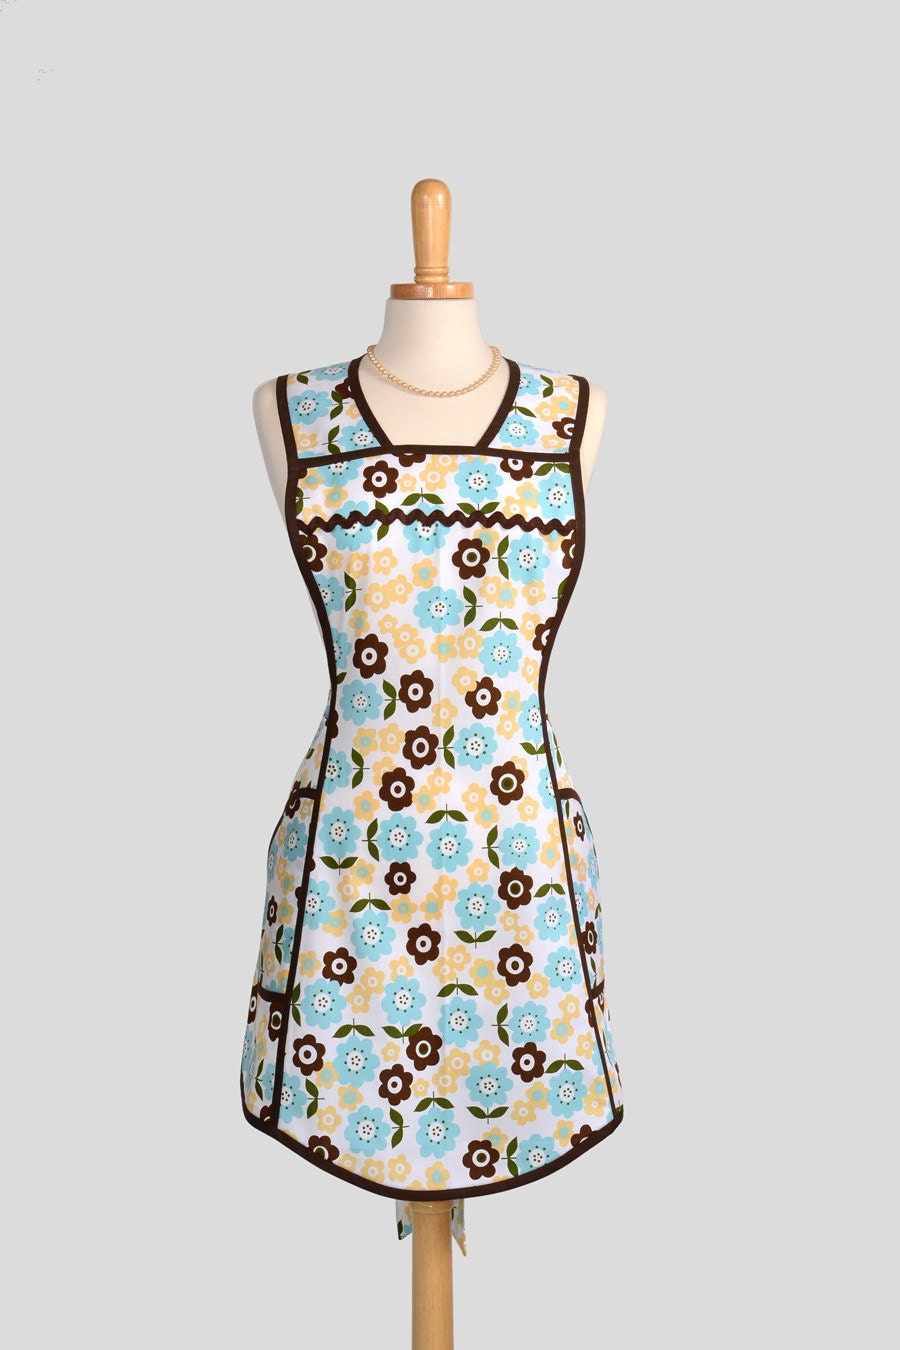 Retro Full Kitchen Apron Handmade Cute Womens by CreativeChics